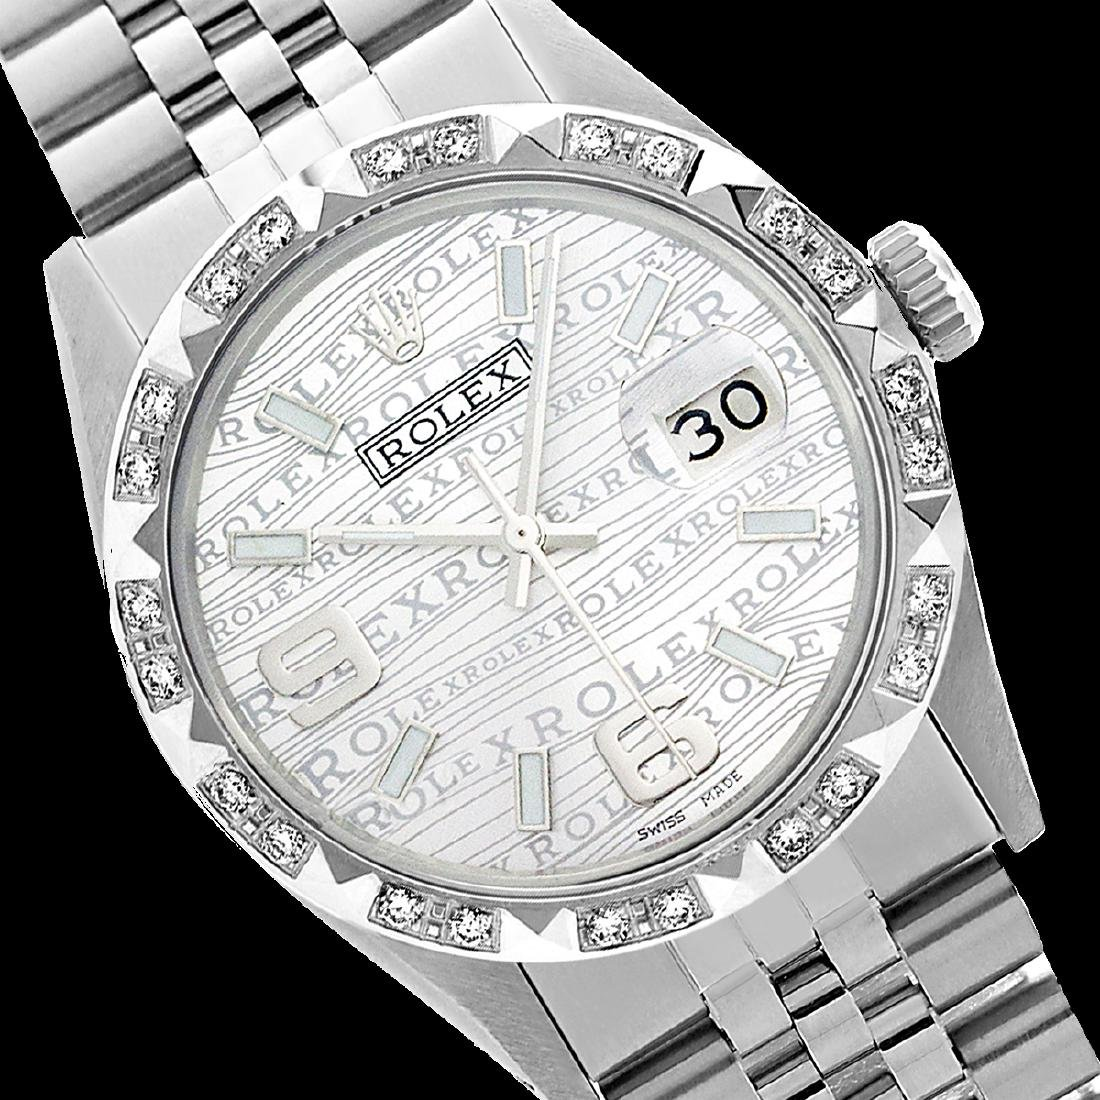 Rolex Men's Stainless Steel, QuickSet, Arabic Dial with